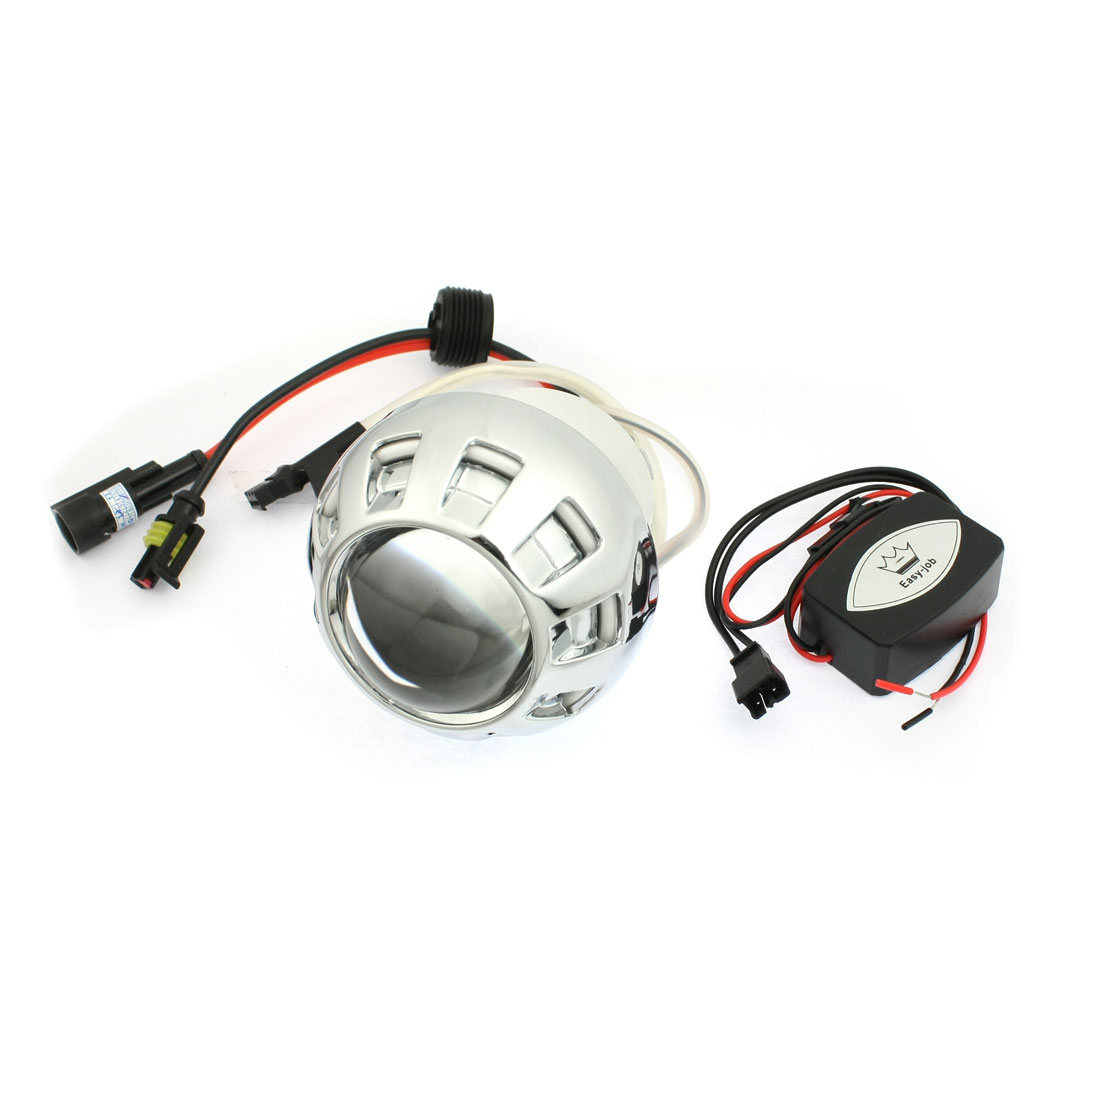 DC 12V 3W Motorcycle Motorbike HID Xenon Projector White Lens Lamp Kit